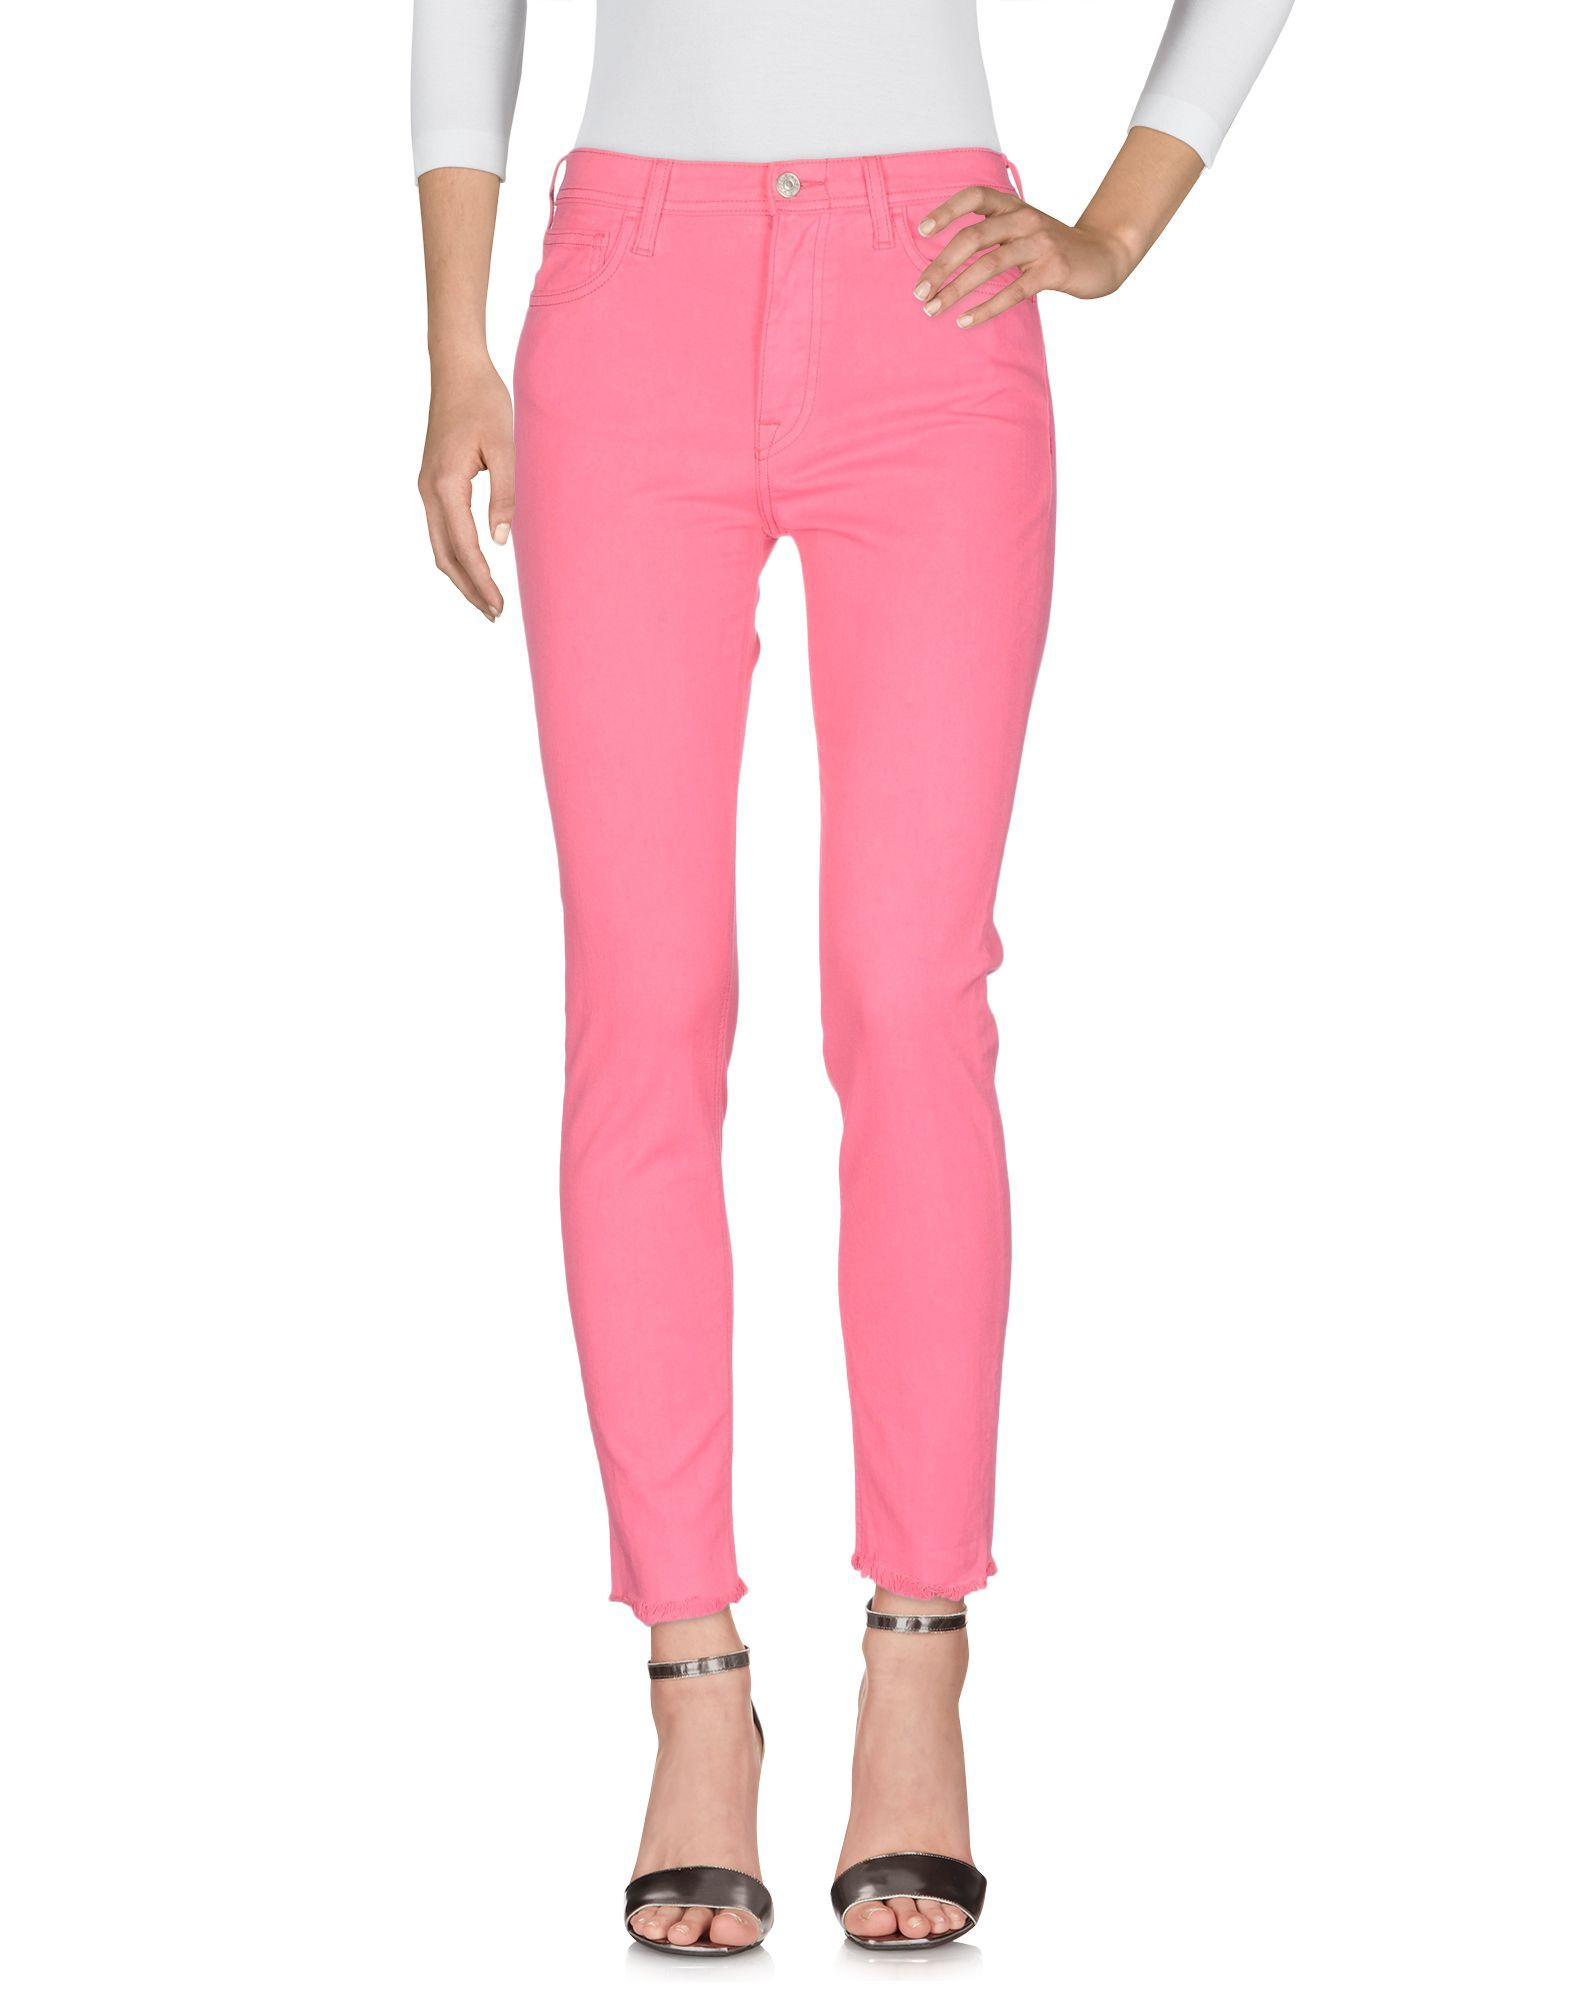 Cycle Pink Cotton Slim Fit Jeans